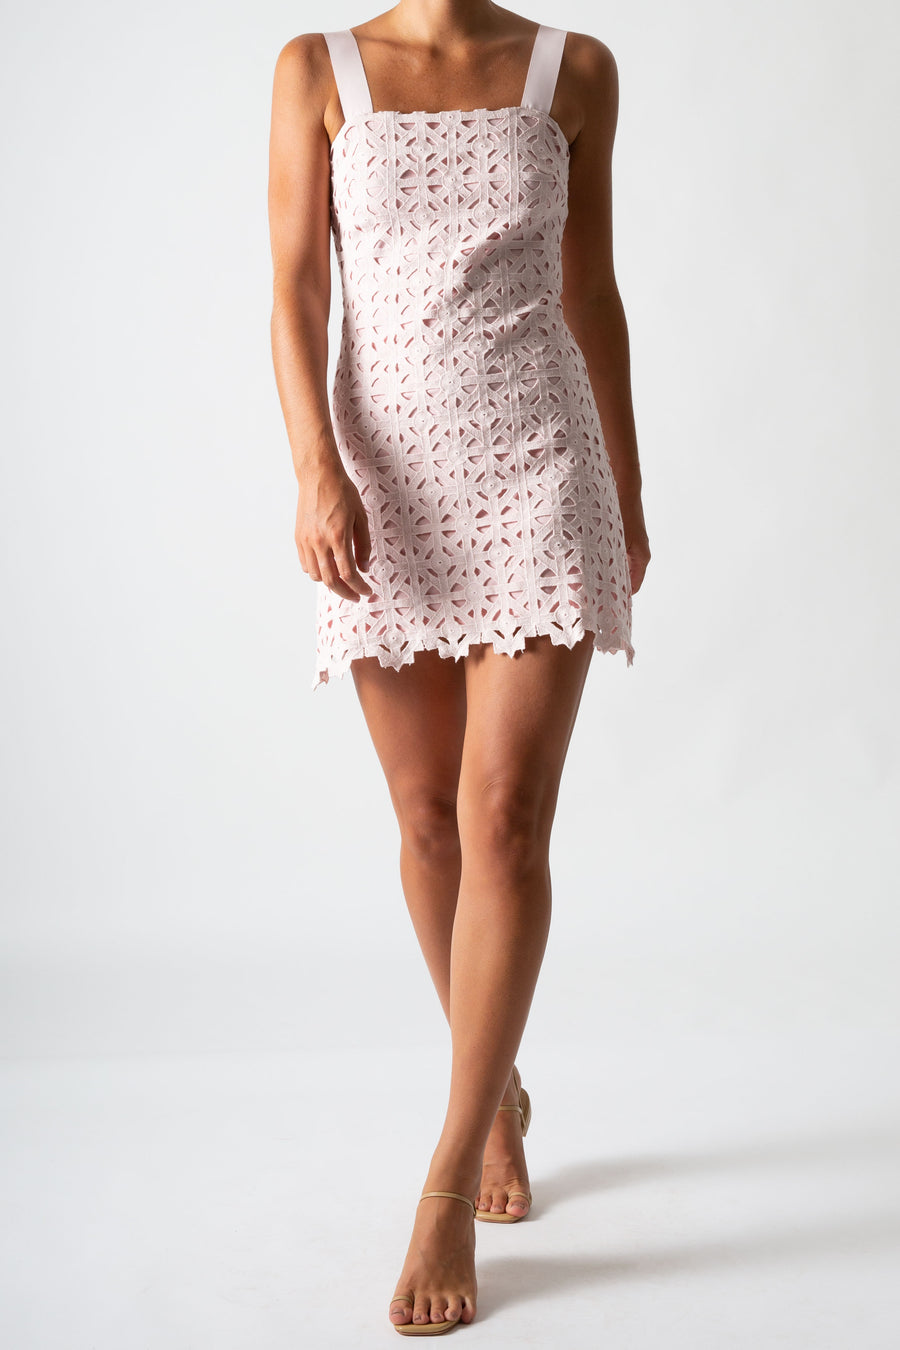 This is a photo of a woman wearing a mini pink lace dress with ribbon straps.